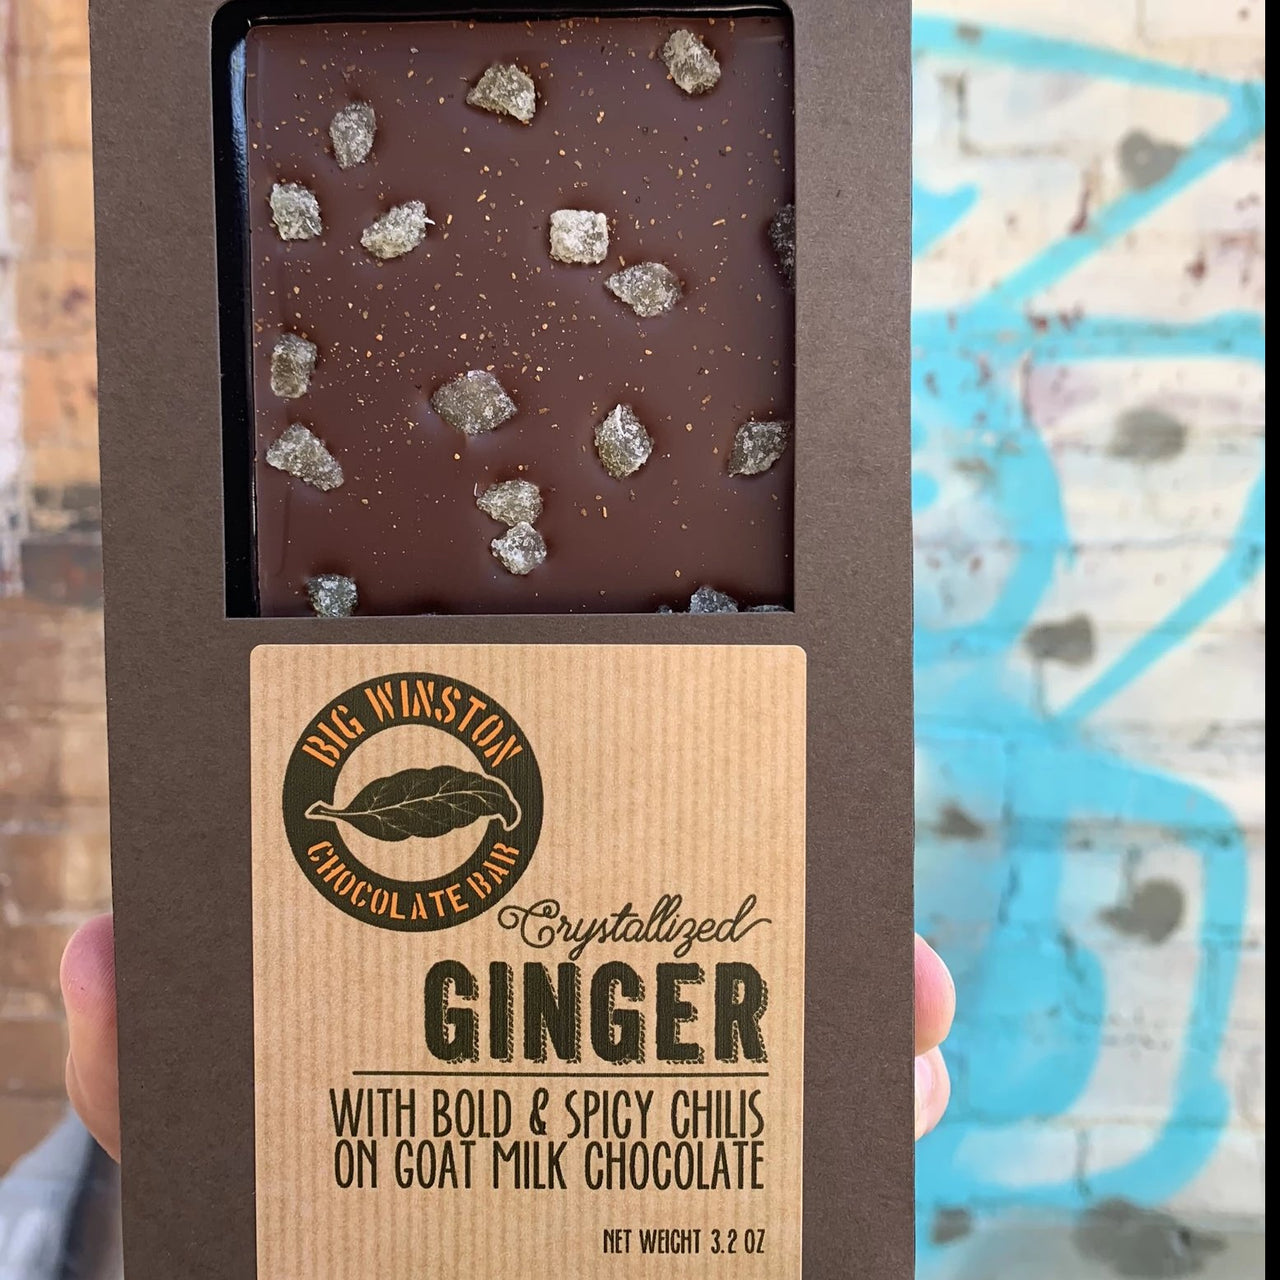 Ginger-Chili Big Winston Bar